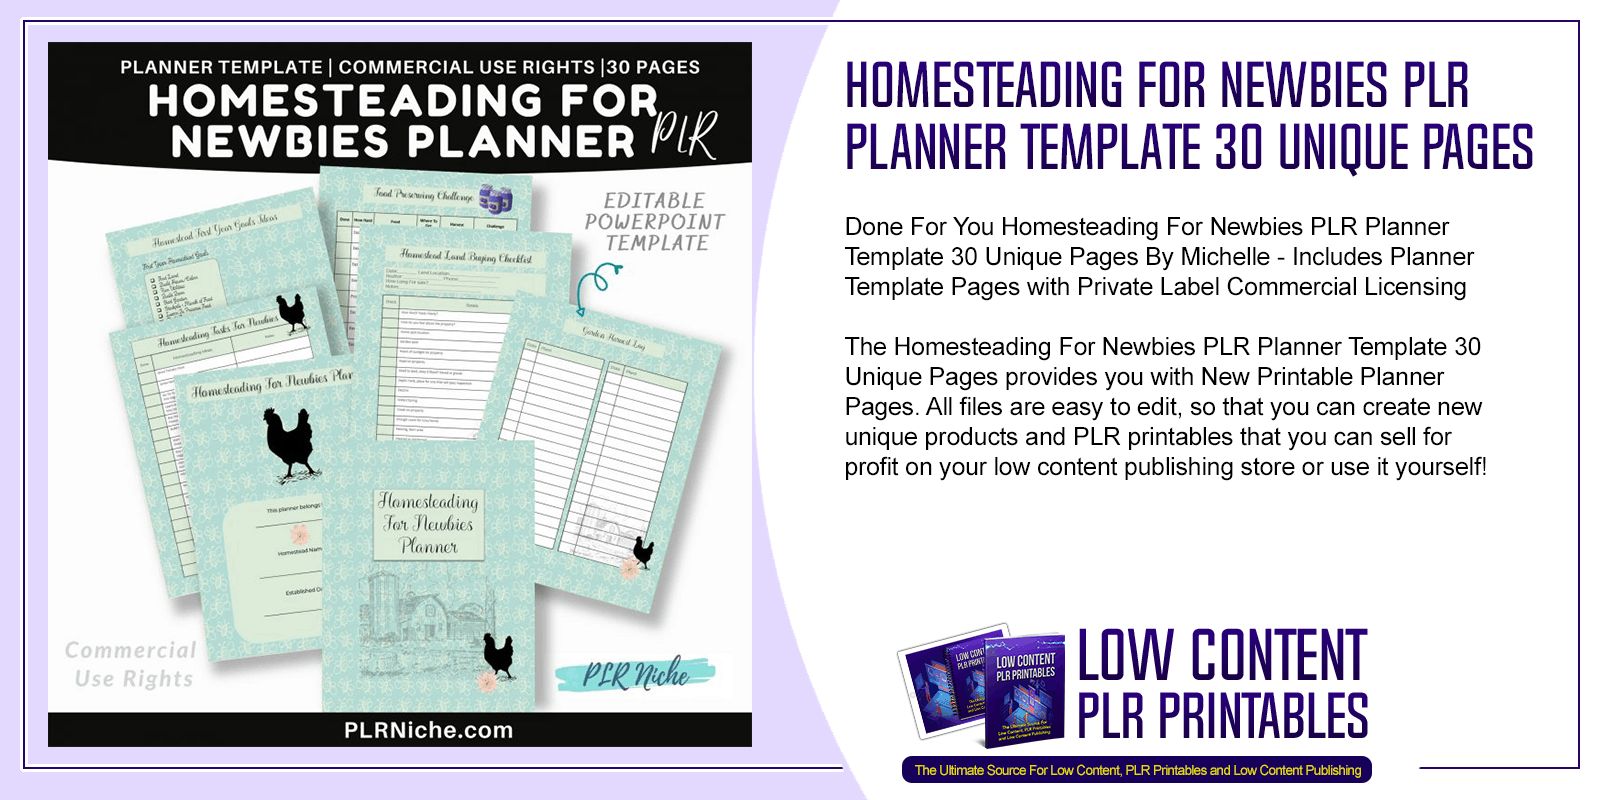 Homesteading For Newbies PLR Planner Template 30 Unique Pages